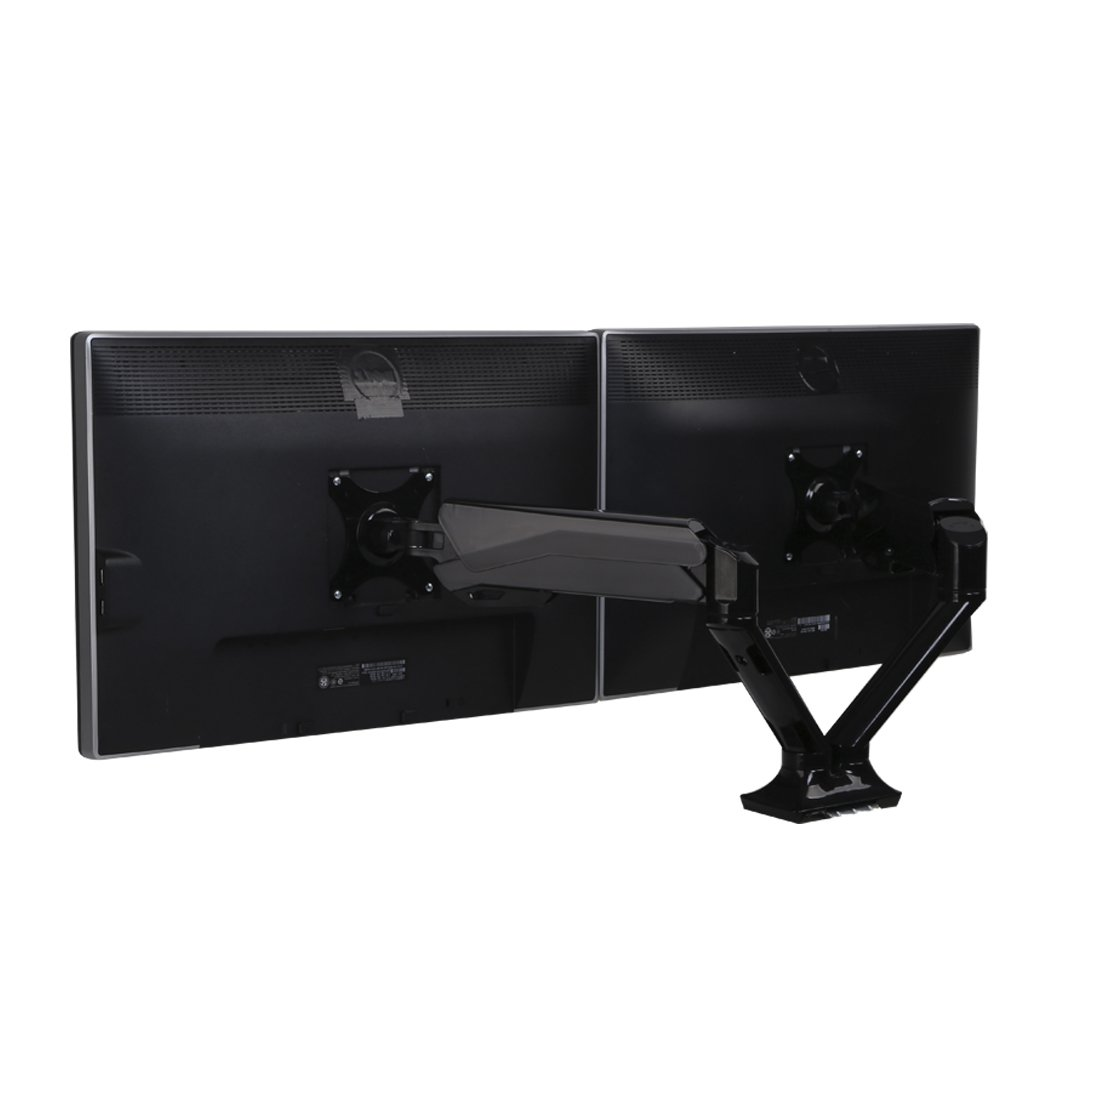 FlexiSpot Dual Monitor Mount, Gas Spring Desk Stand for Two 10''-27'' Flat Screen (F6AD) by FLEXISPOT